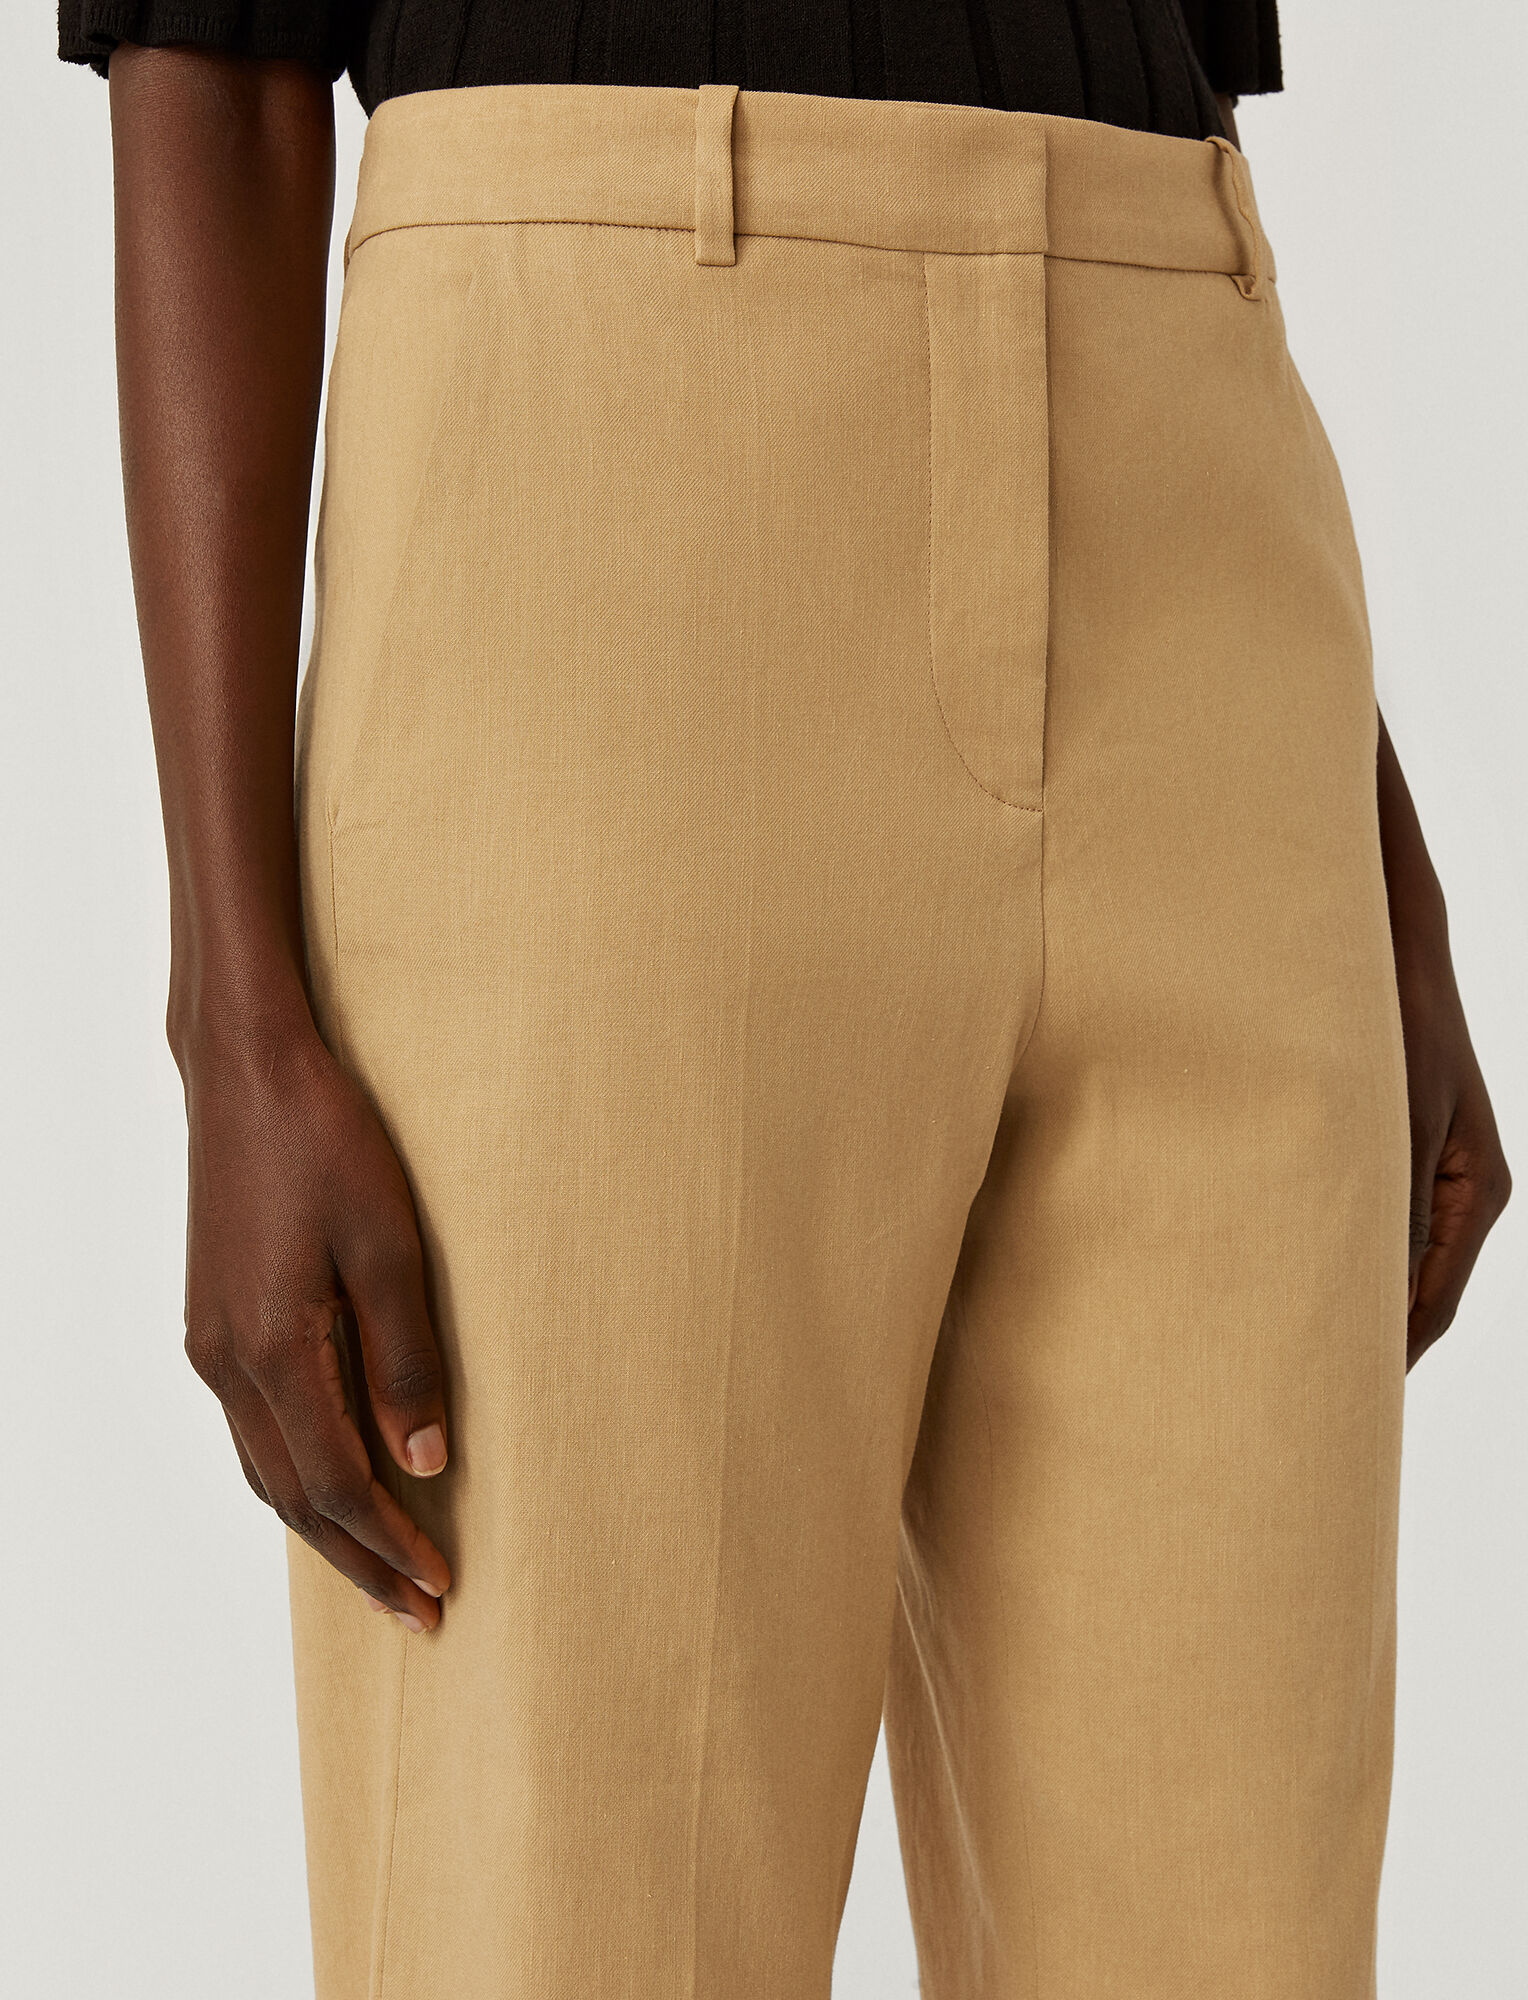 Joseph, Stretch Linen Cotton Trina Trousers, in TOFFEE